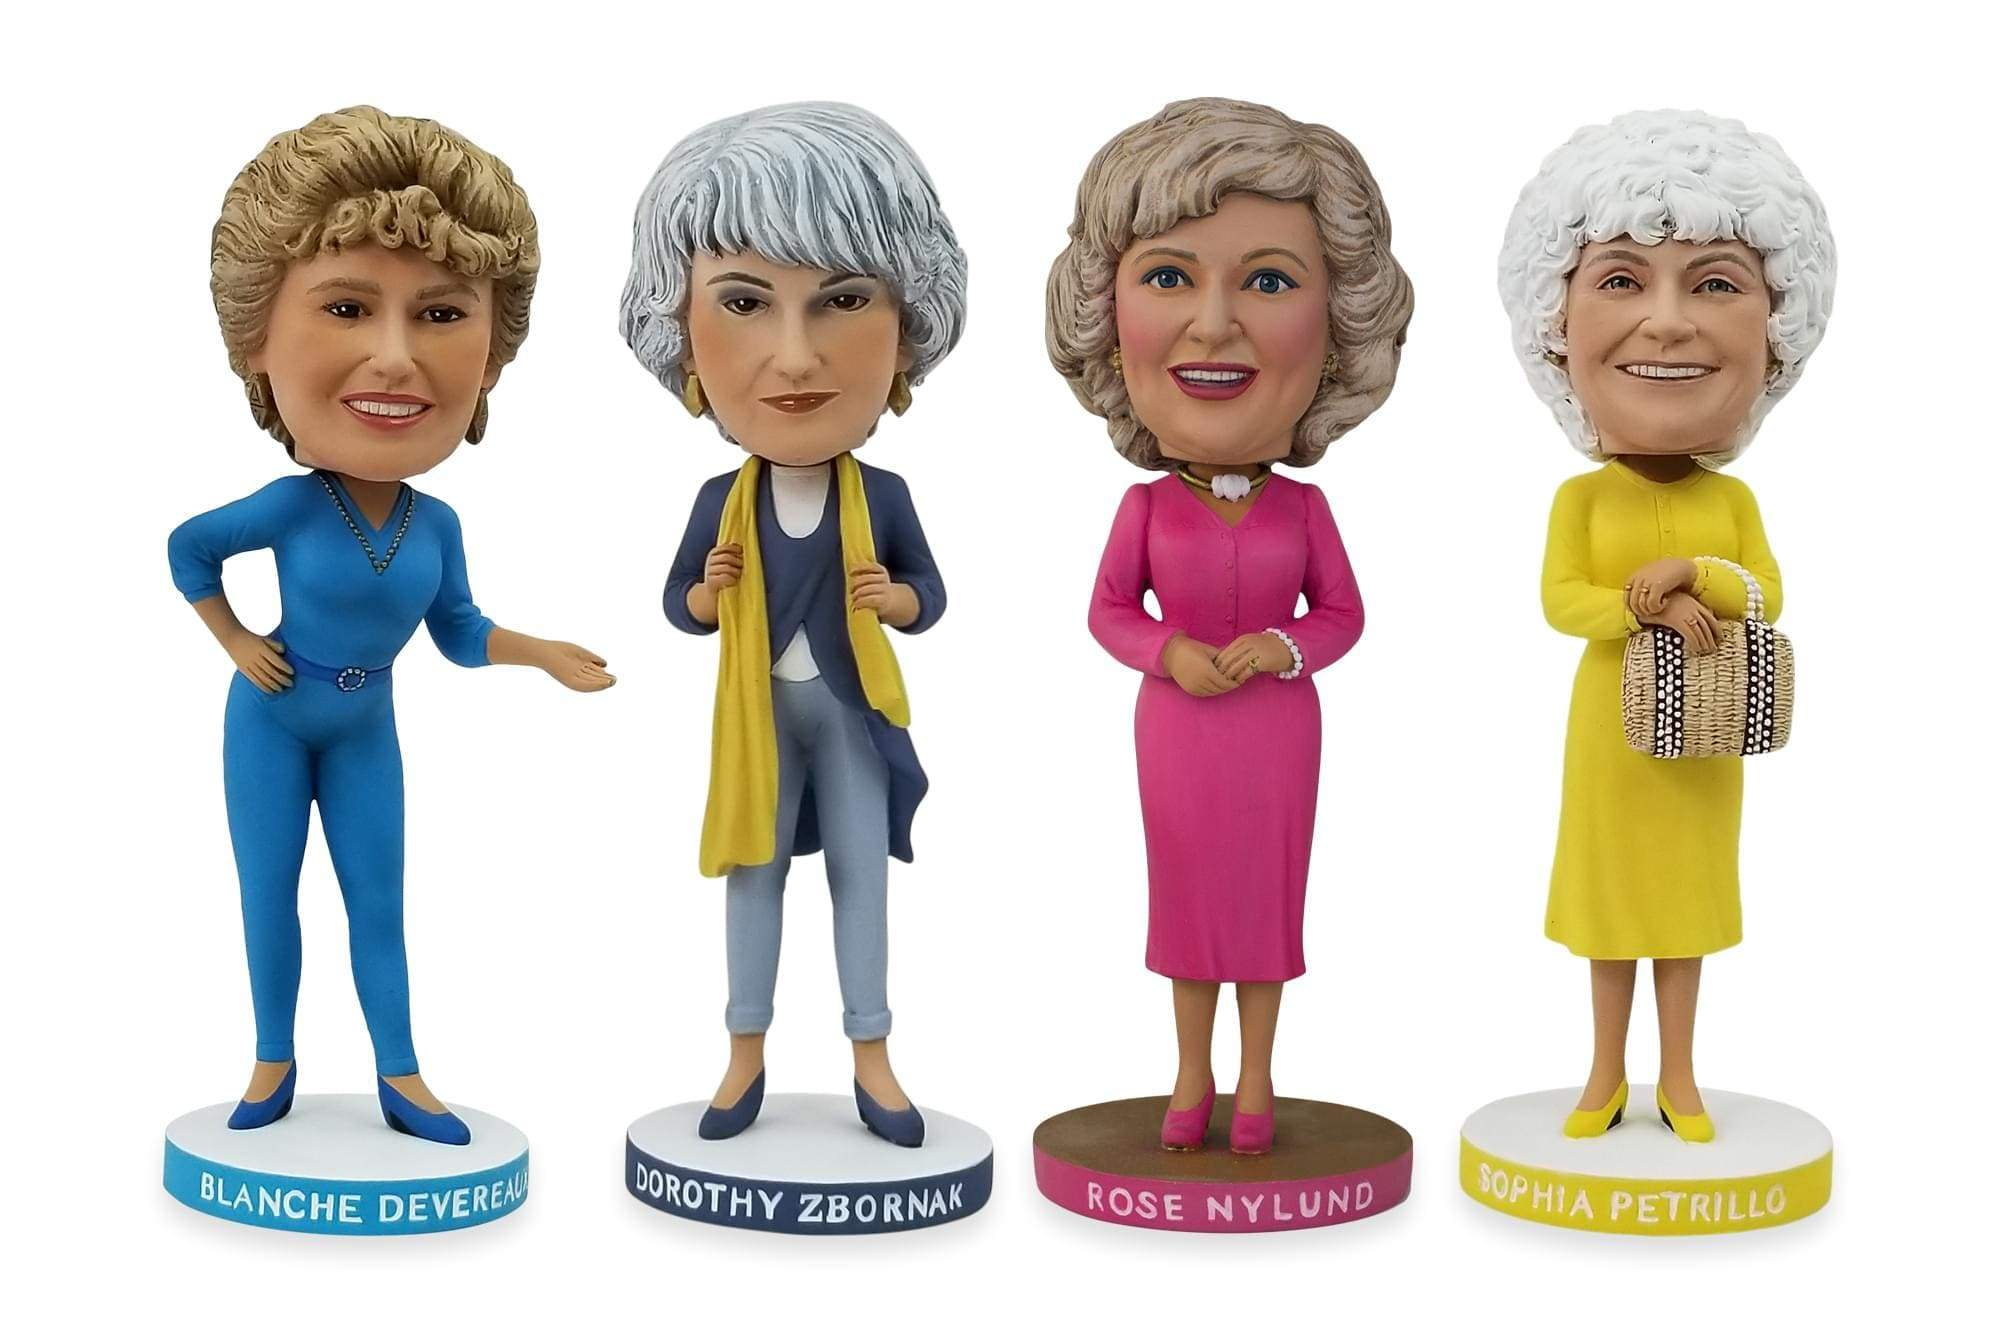 Comic-Con@Home toy lineup includes adorable Golden Girls bobbleheads and mugs 14